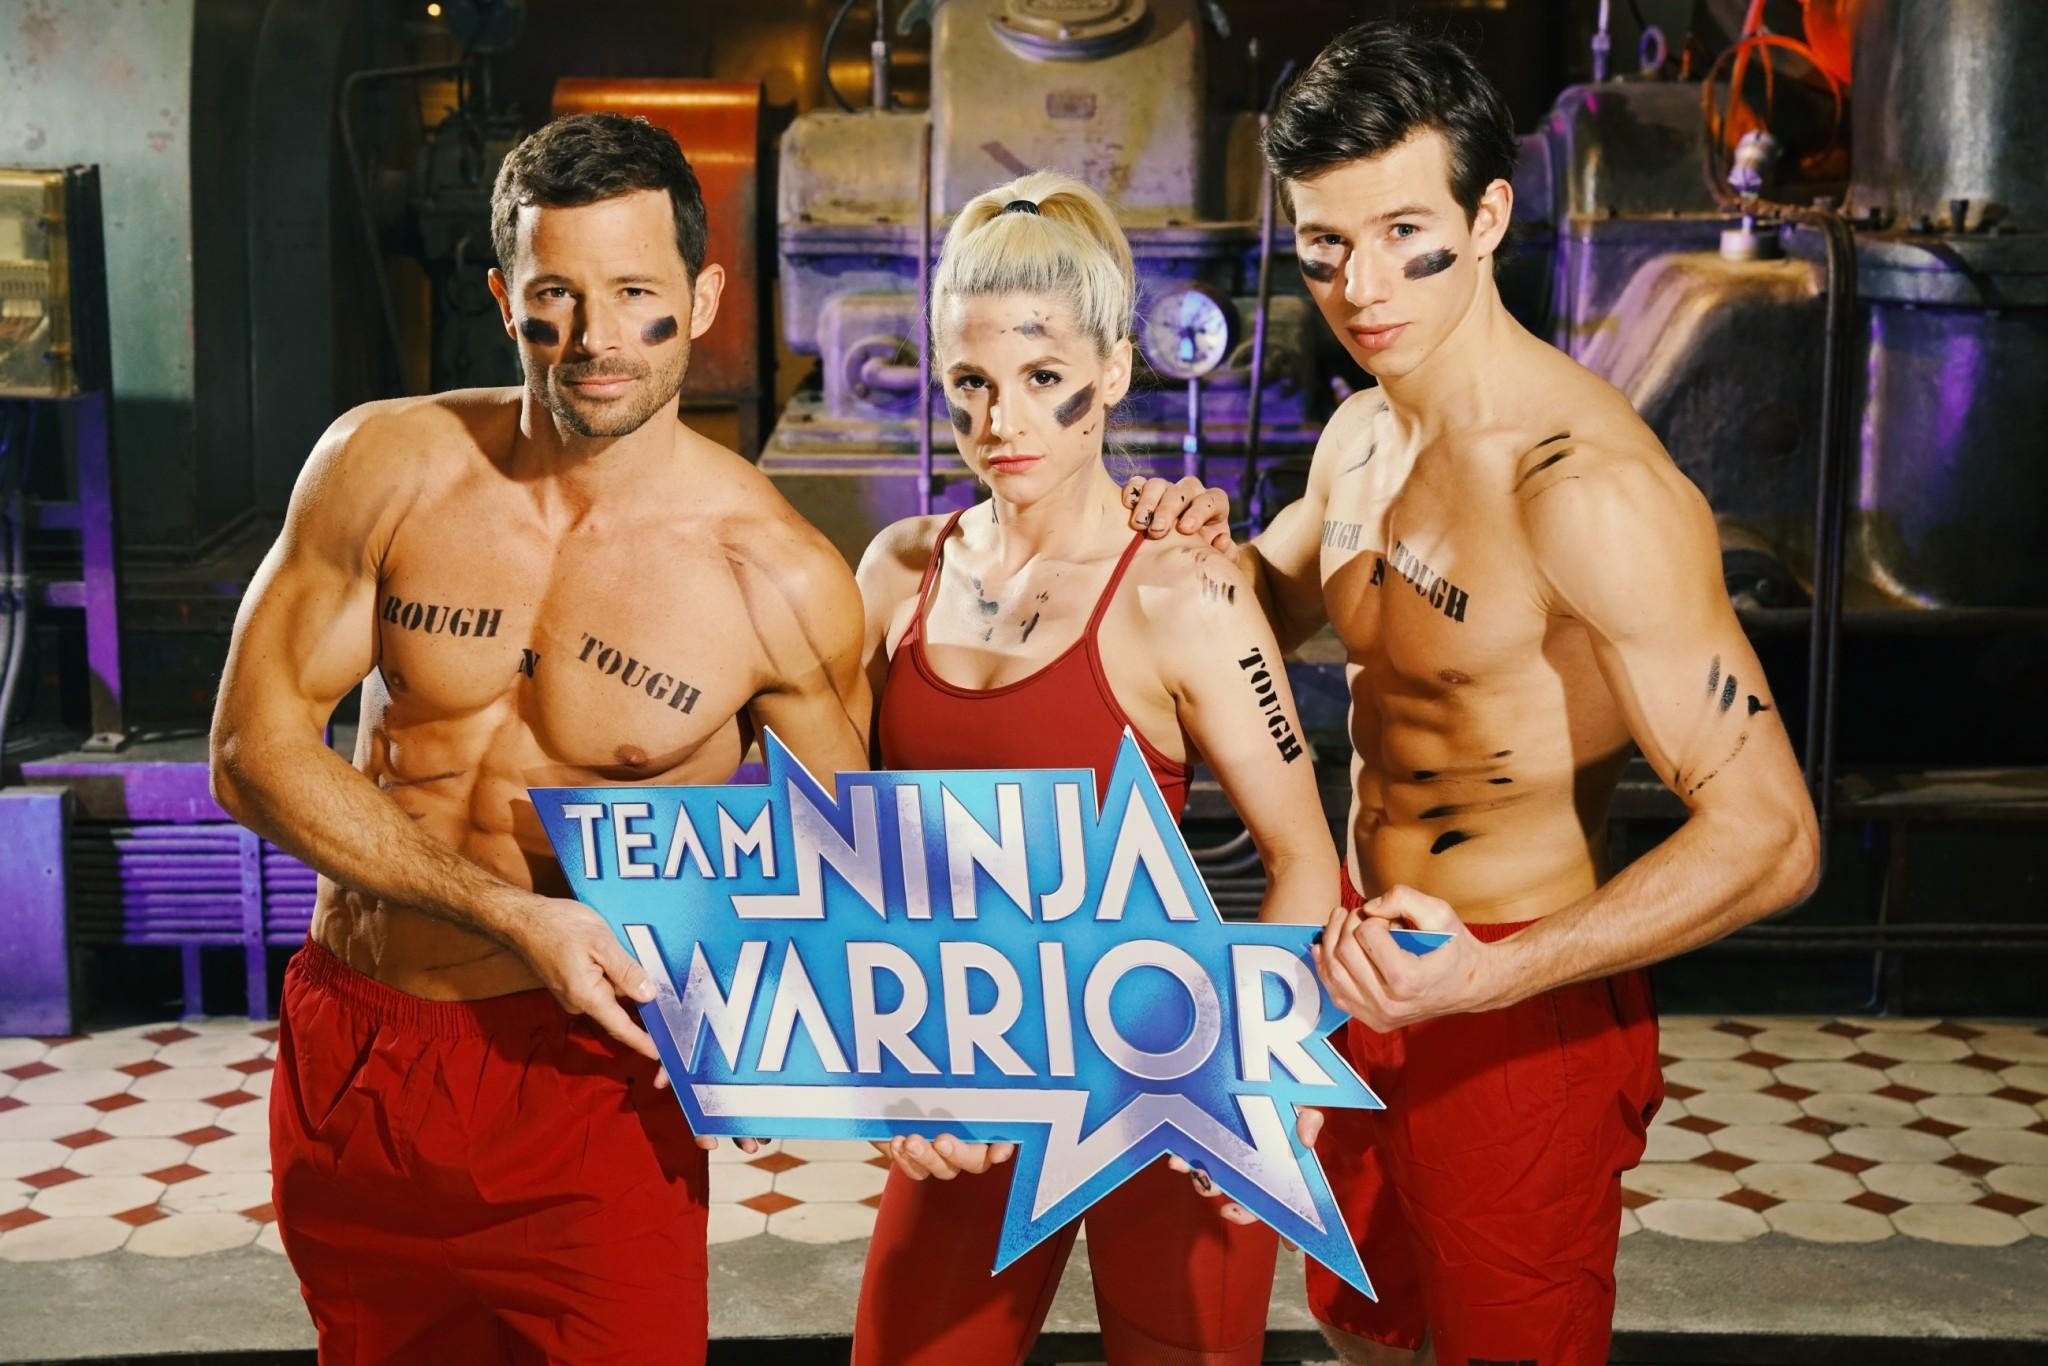 Team Ninja Warrior - Teams Show 5